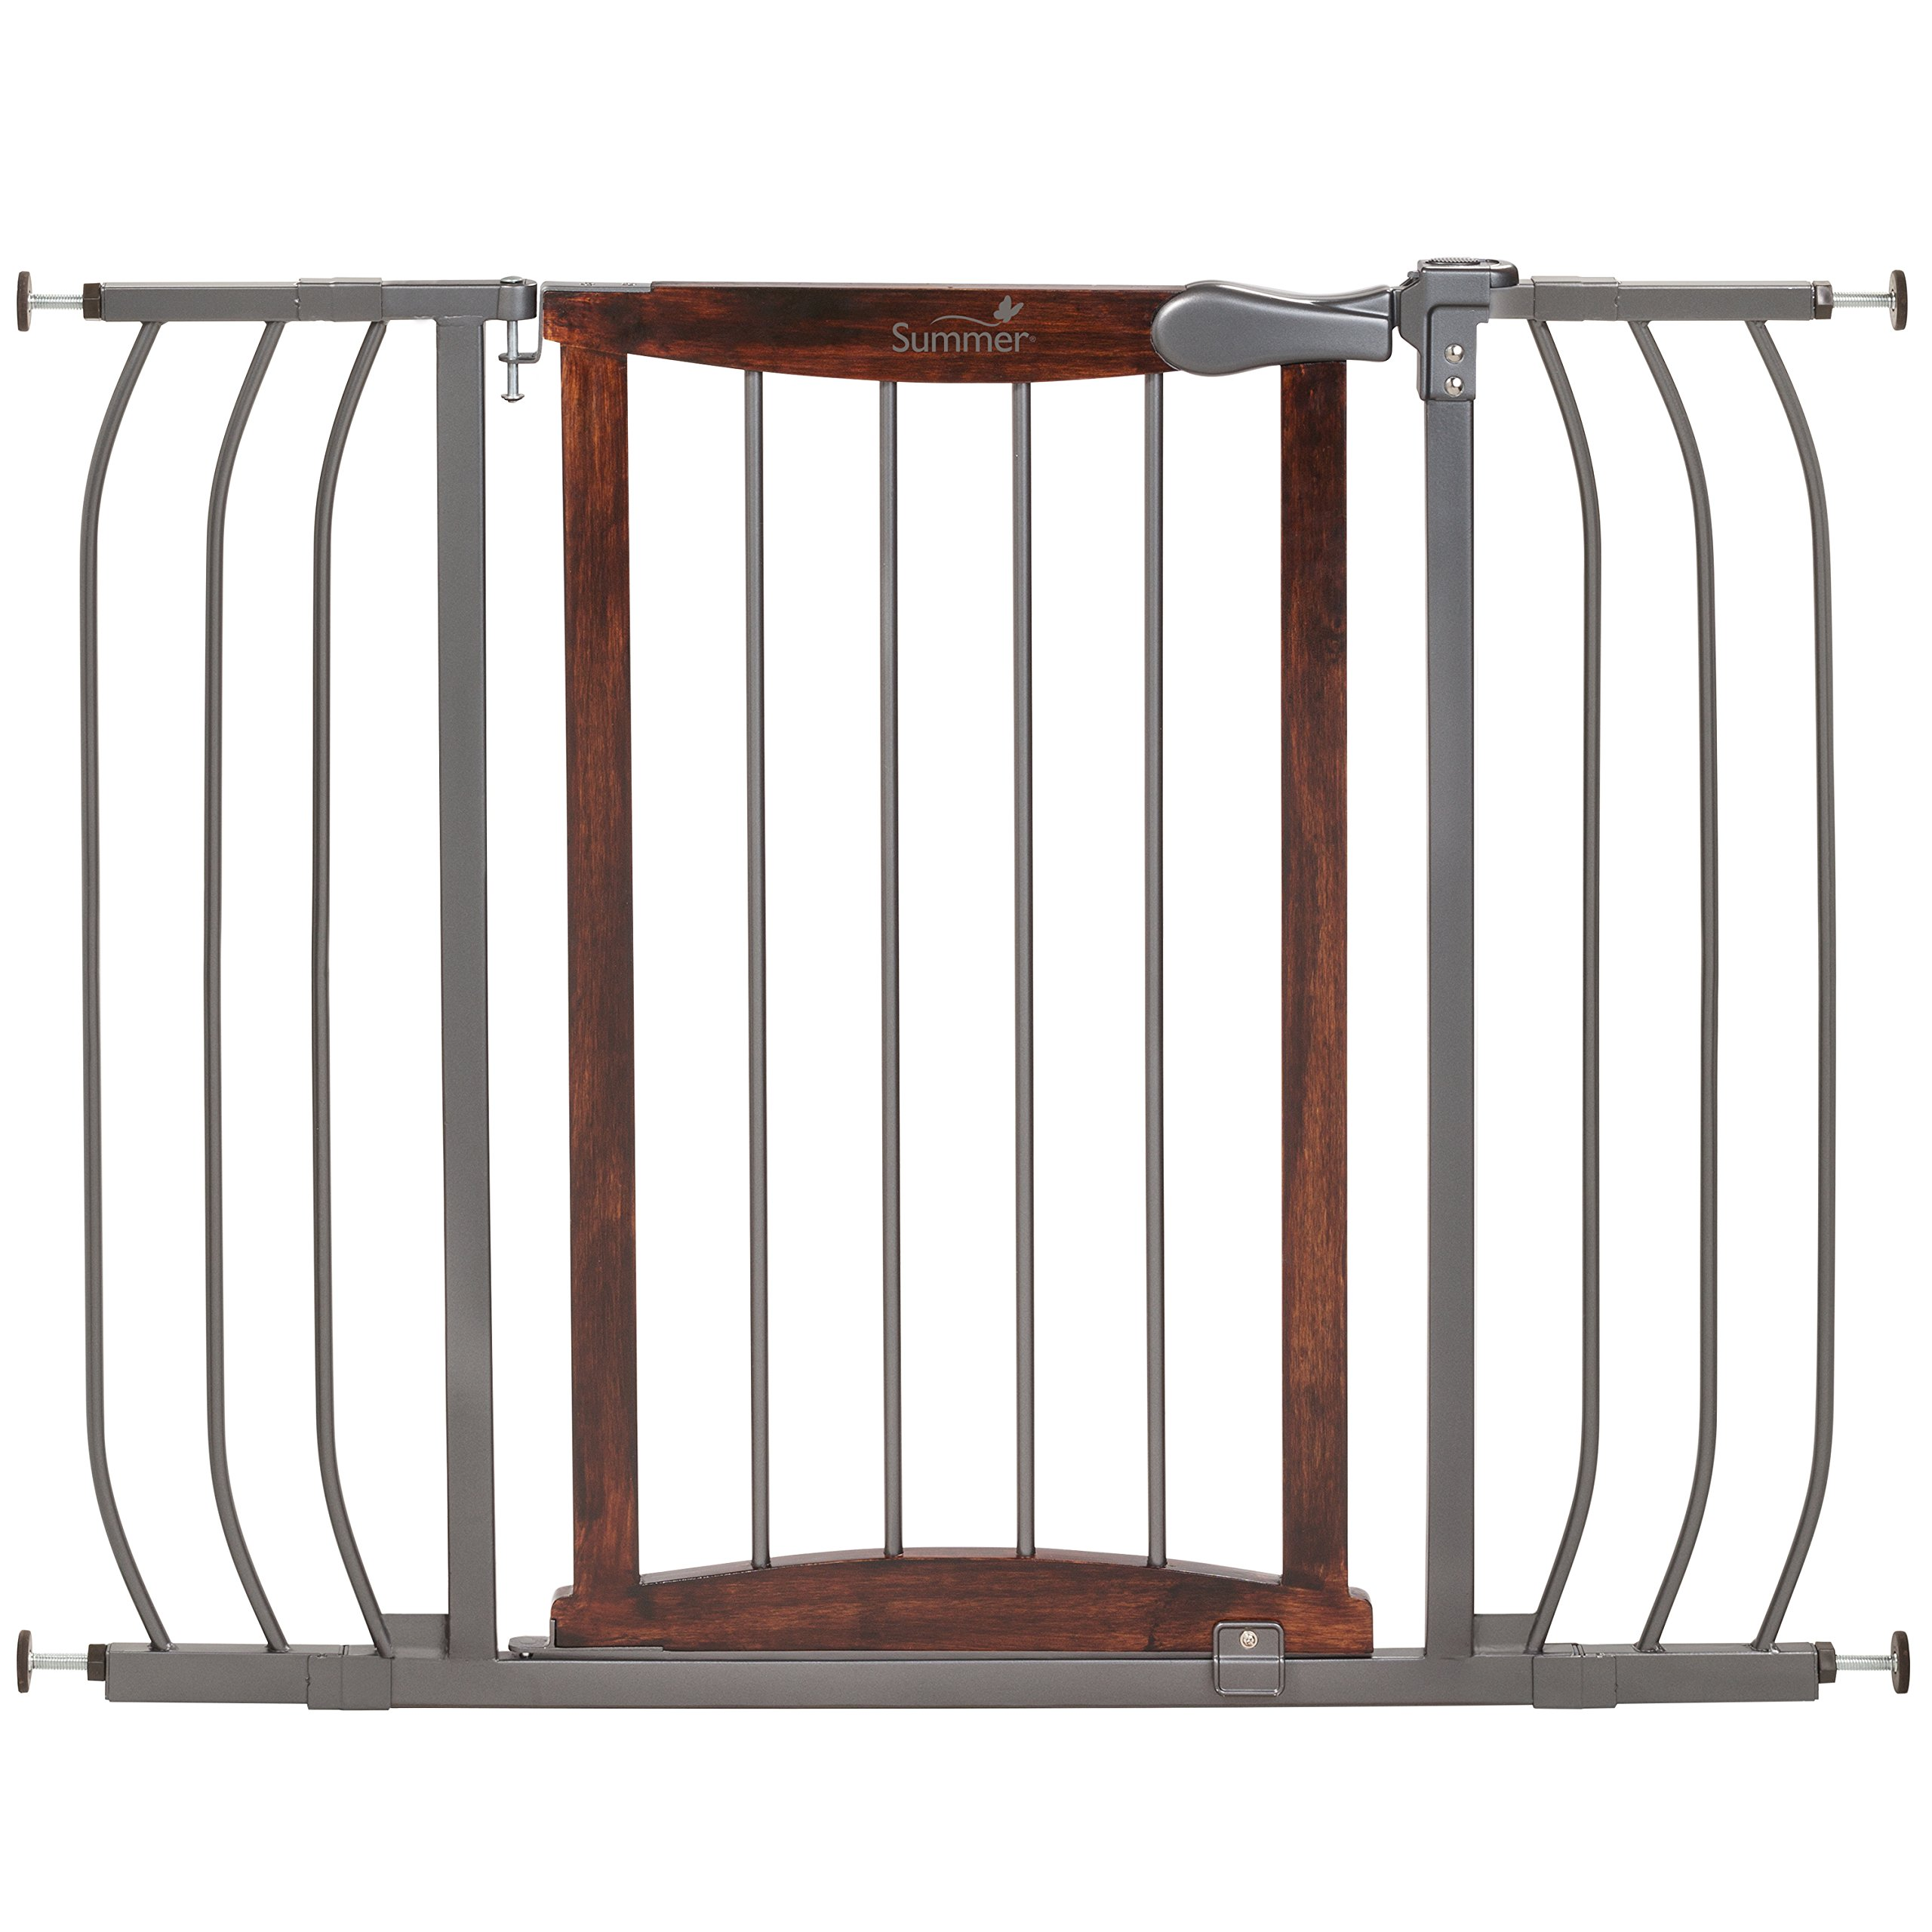 Summer Anywhere Decorative Walk-Thru Gate by Summer Infant